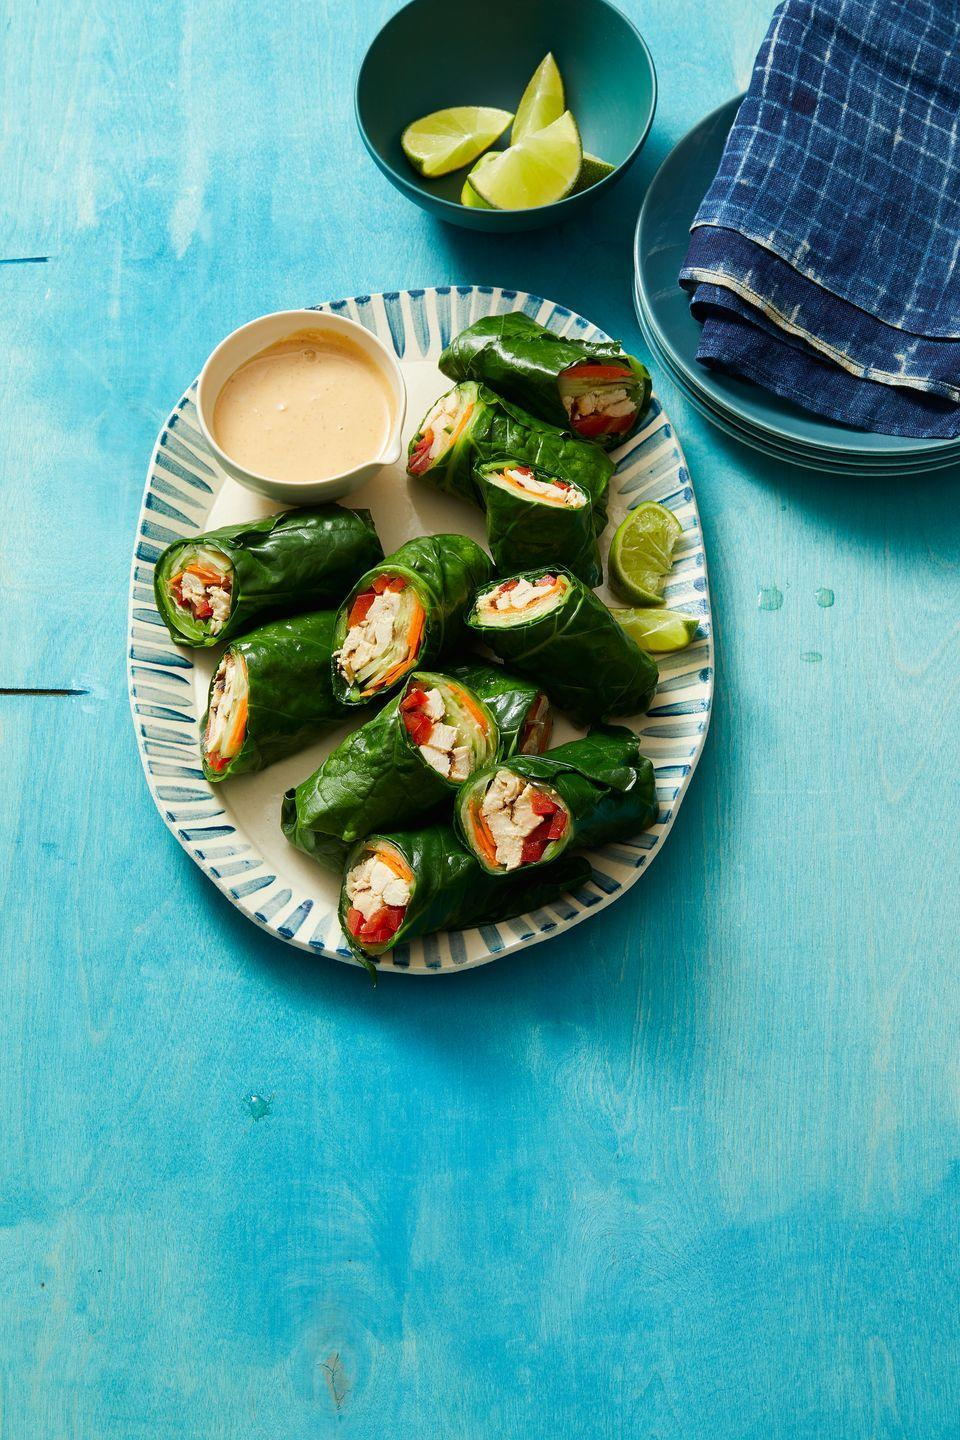 """<p>If you're looking to switch up your regular lettuce wraps, try using Swiss chard instead. </p><p><strong><em><a href=""""https://www.womansday.com/food-recipes/a32293196/thai-style-peanut-chicken-wraps-recipe/"""" rel=""""nofollow noopener"""" target=""""_blank"""" data-ylk=""""slk:Get the recipe for Thai-Style Peanut Chicken Wraps."""" class=""""link rapid-noclick-resp"""">Get the recipe for Thai-Style Peanut Chicken Wraps.</a></em></strong></p>"""